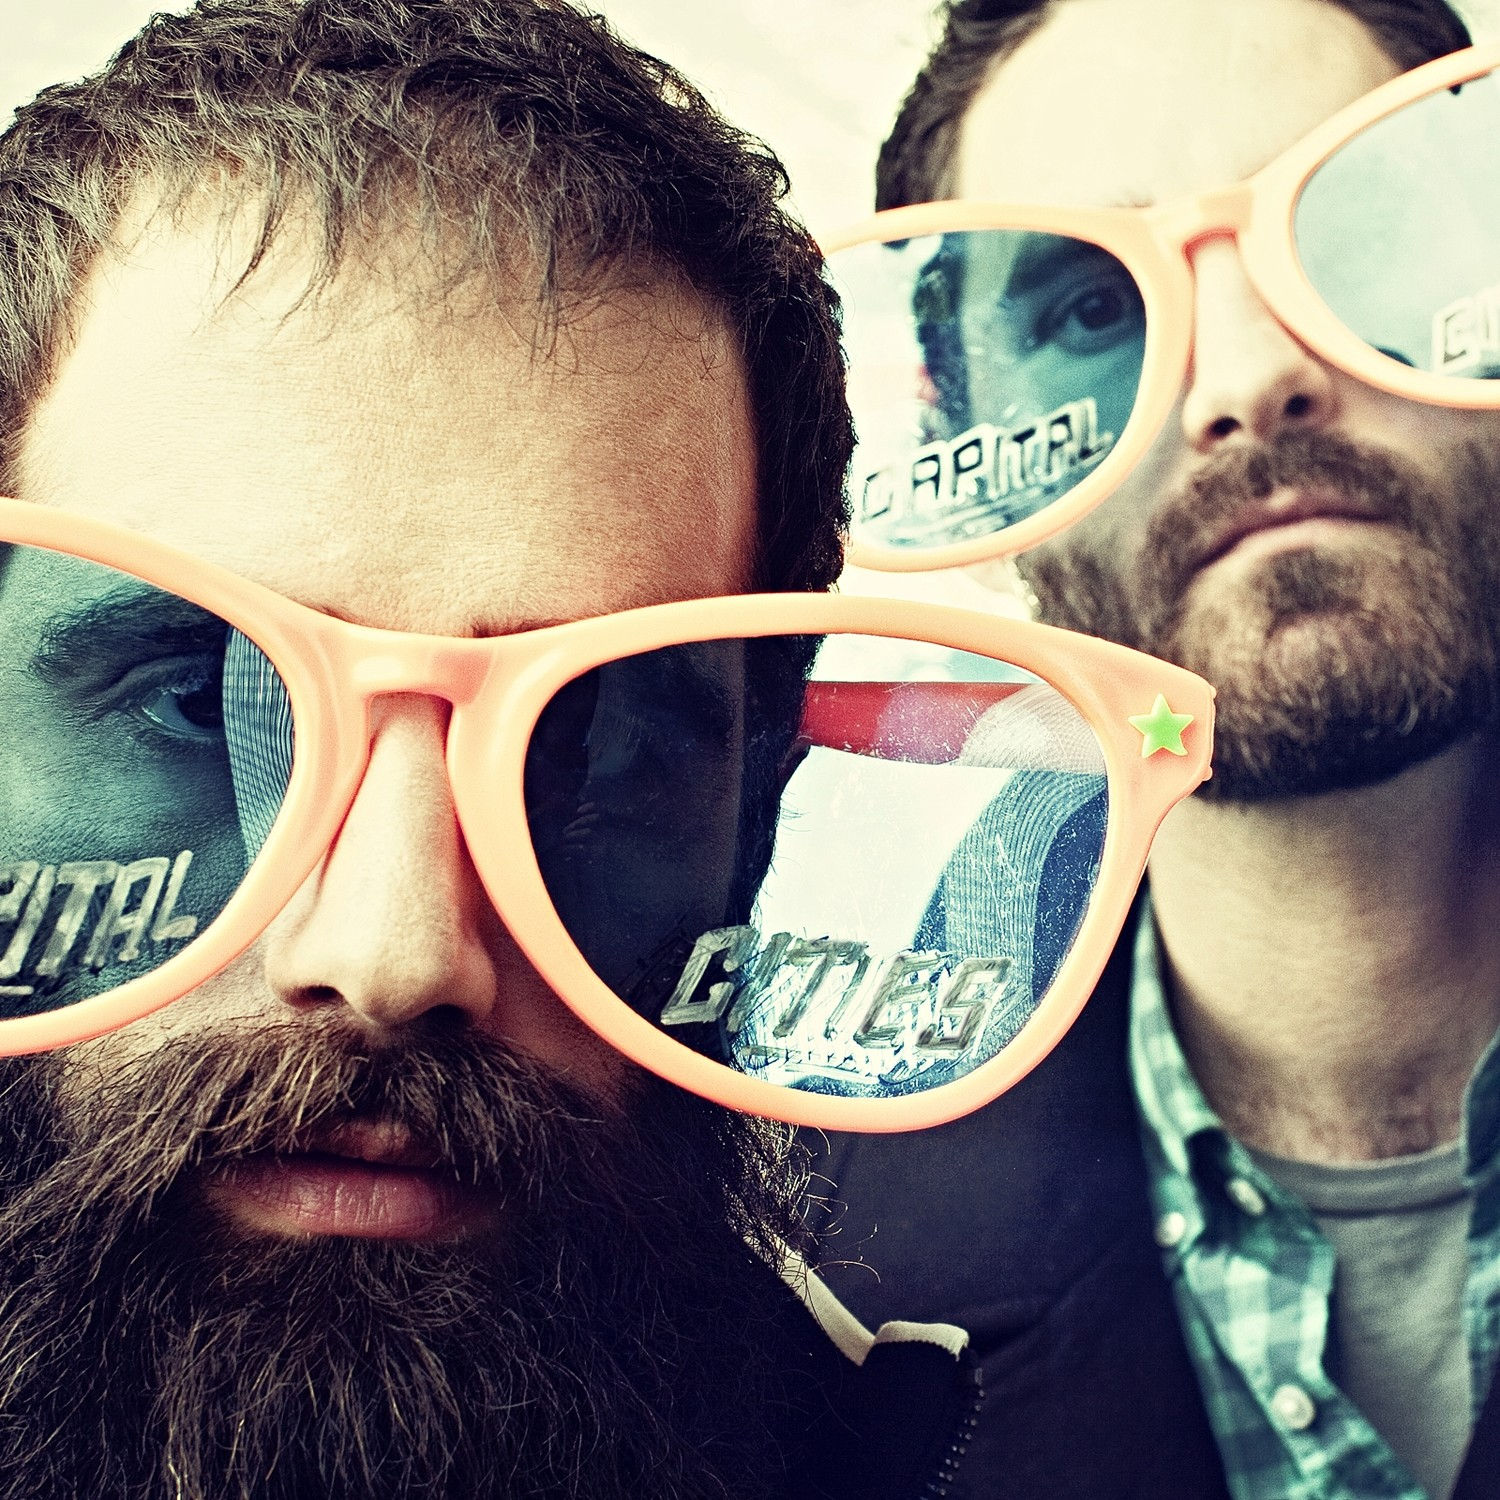 Los Angeles new wave duo Capital Cities rides high June 19 at Jack Rabbits in San Marco.